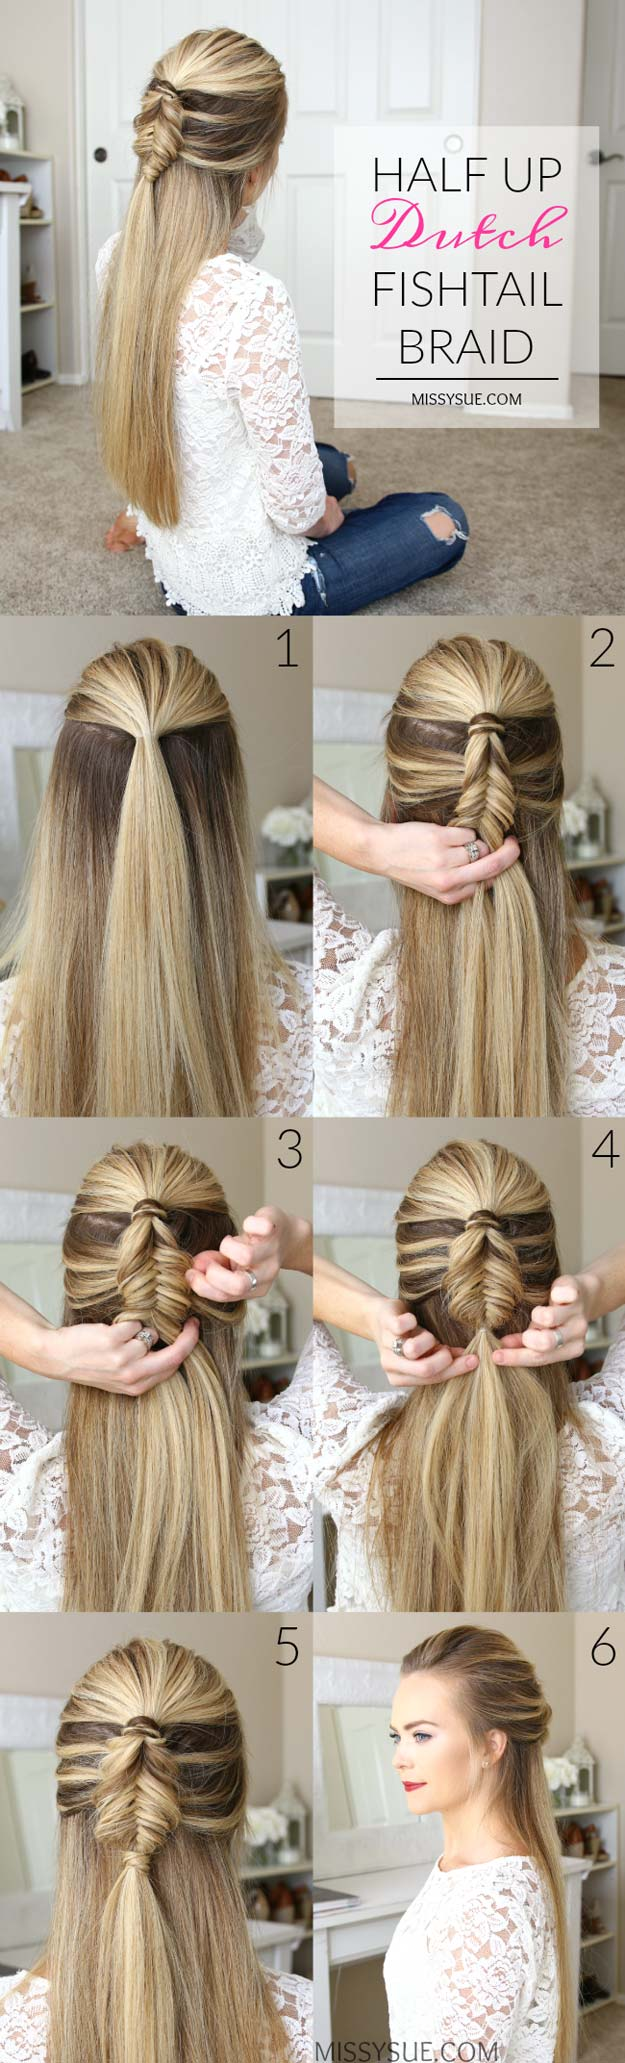 Surprising 40 Of The Best Cute Hair Braiding Tutorials Diy Projects For Teens Hairstyles For Women Draintrainus